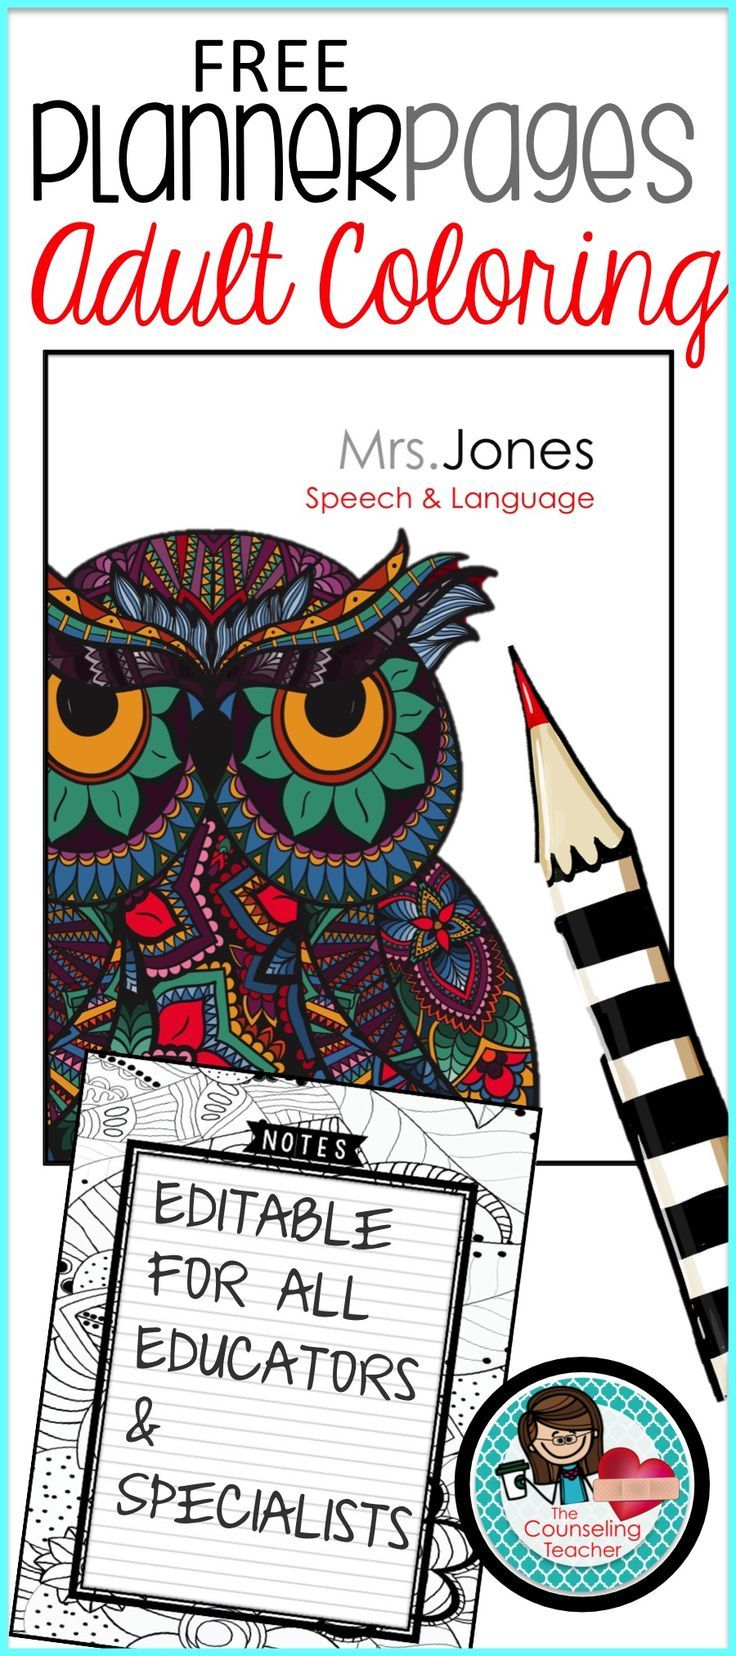 Planner cover and coloring page school counseling ideas